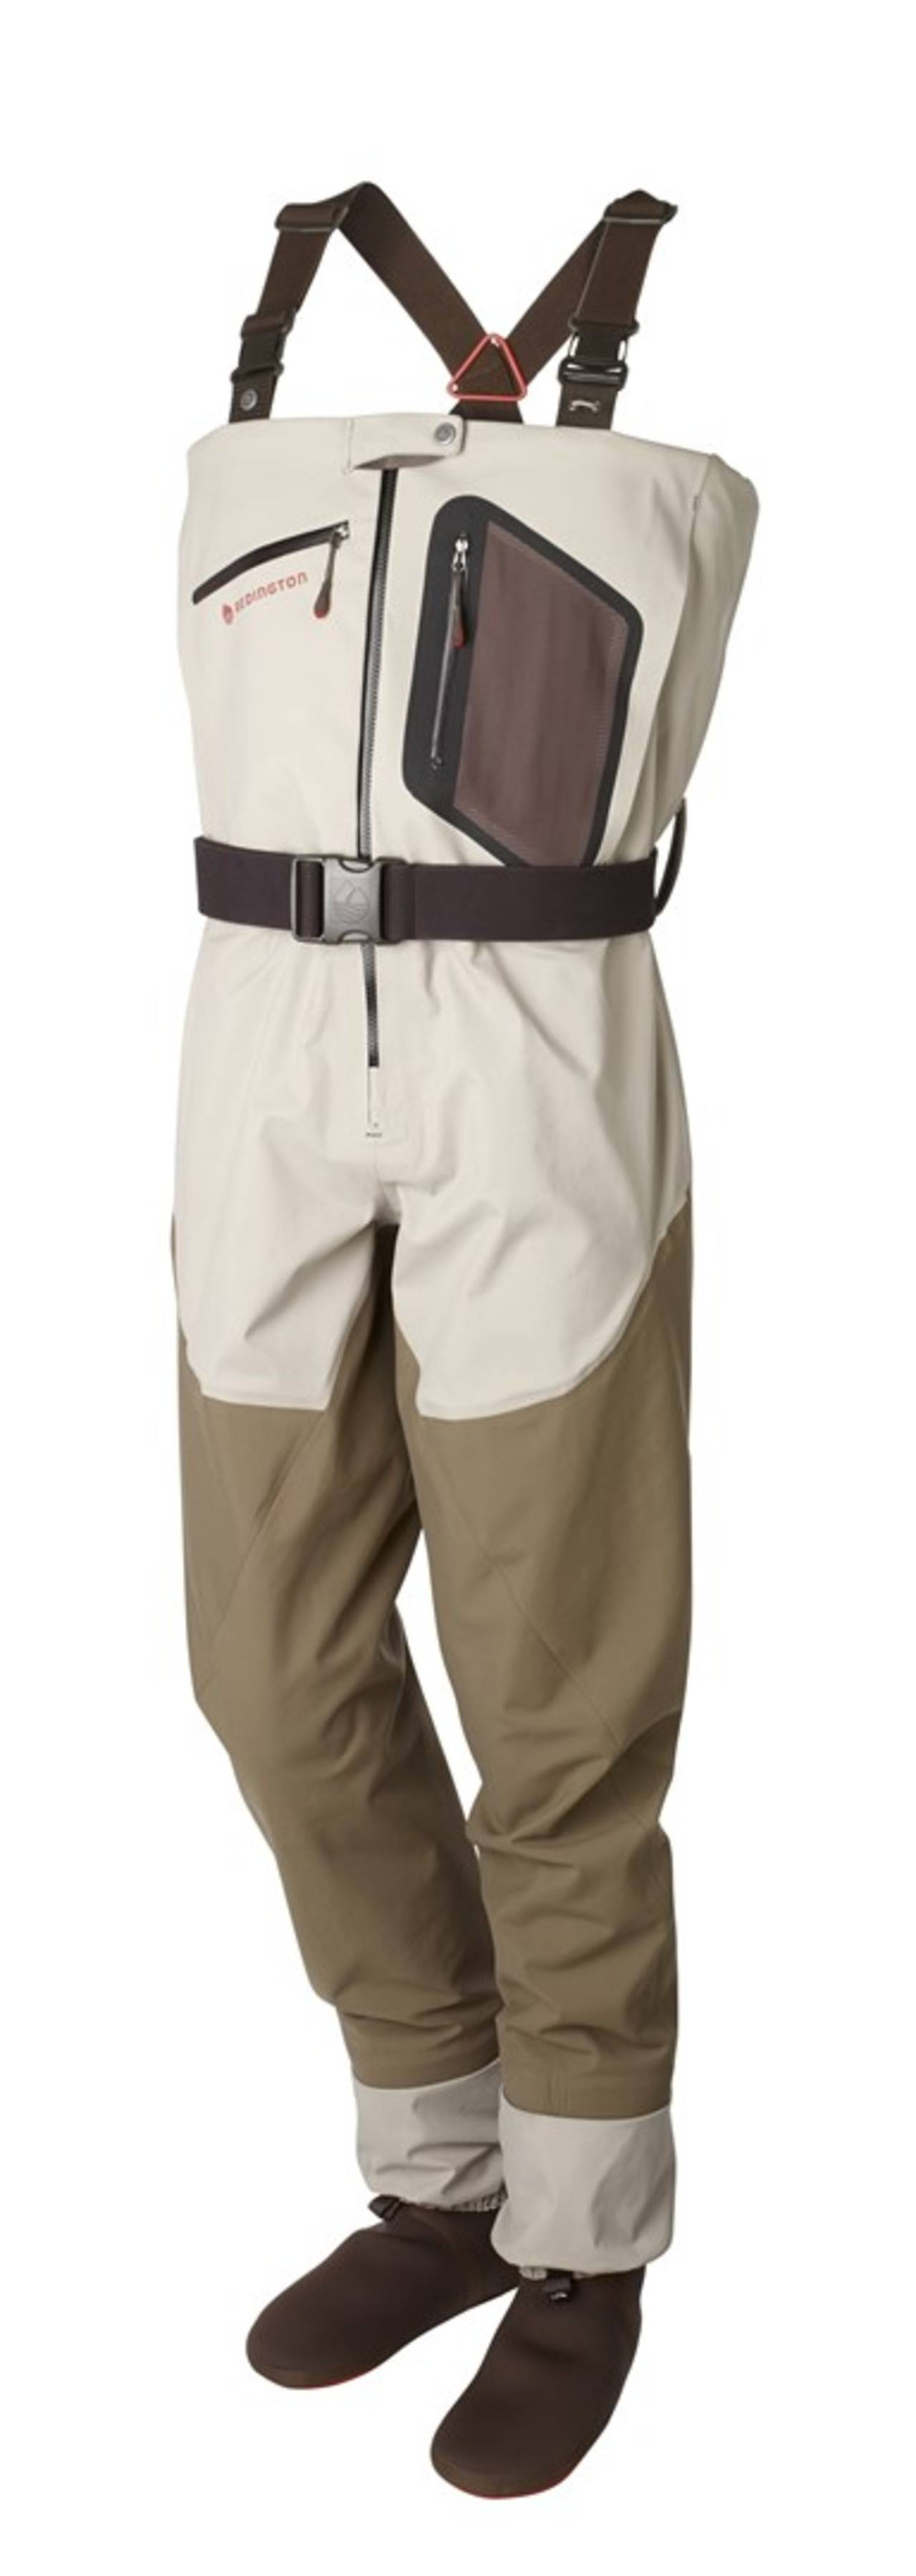 Redington intros new 2014 super dry wader series hatch for Fly fishing waders